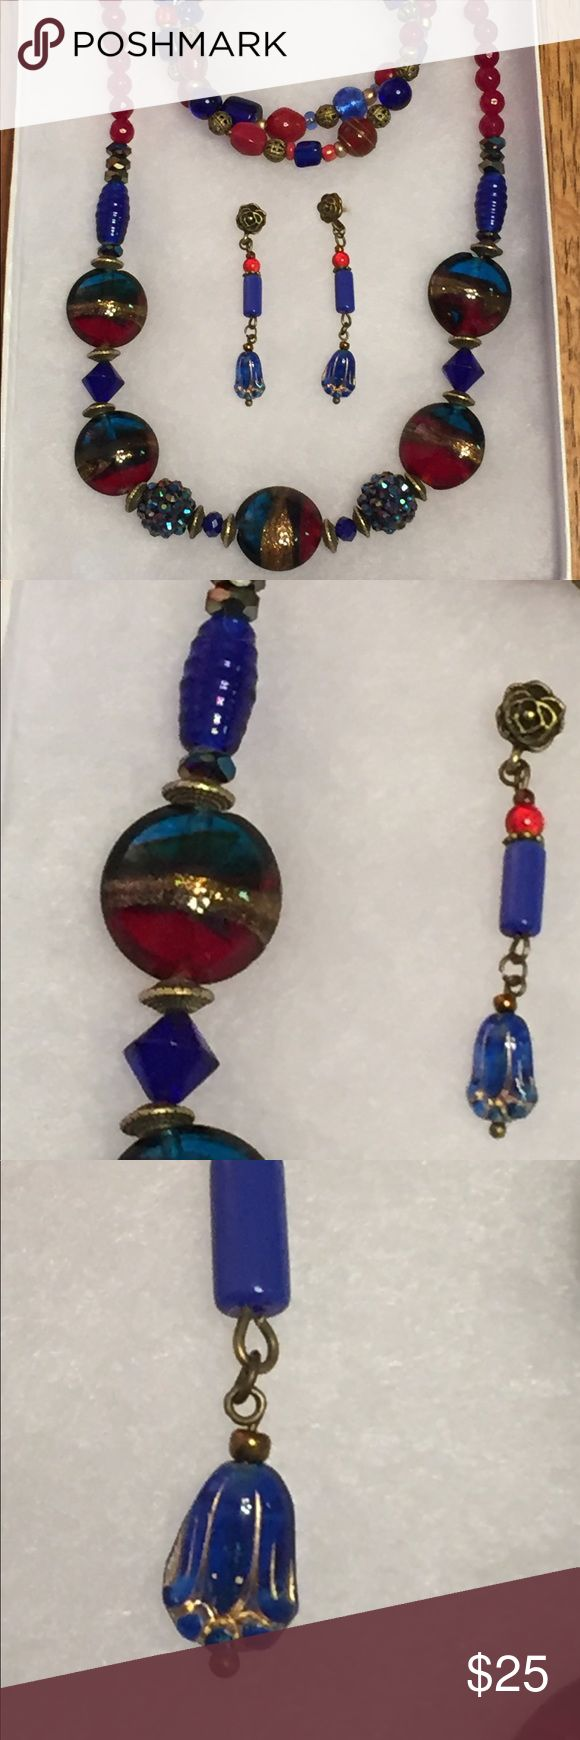 Big Lamp Work Glass Necklace Earrings and Bracelet Dark red and cobalt blue swirled with gold glitter big fat pillowy lamp worked beads like the ones in this necklace are works of art in their own right!  Add a variety of other glass beads and bronze accents and it becomes pretty easy to make something awesomely beautiful!   Great price.  These beads are costly but worth it.  Yours today for a steal with double-strand bracelet and Cobalt Blue Pressed Czech Glass Matching Earrings!  All…